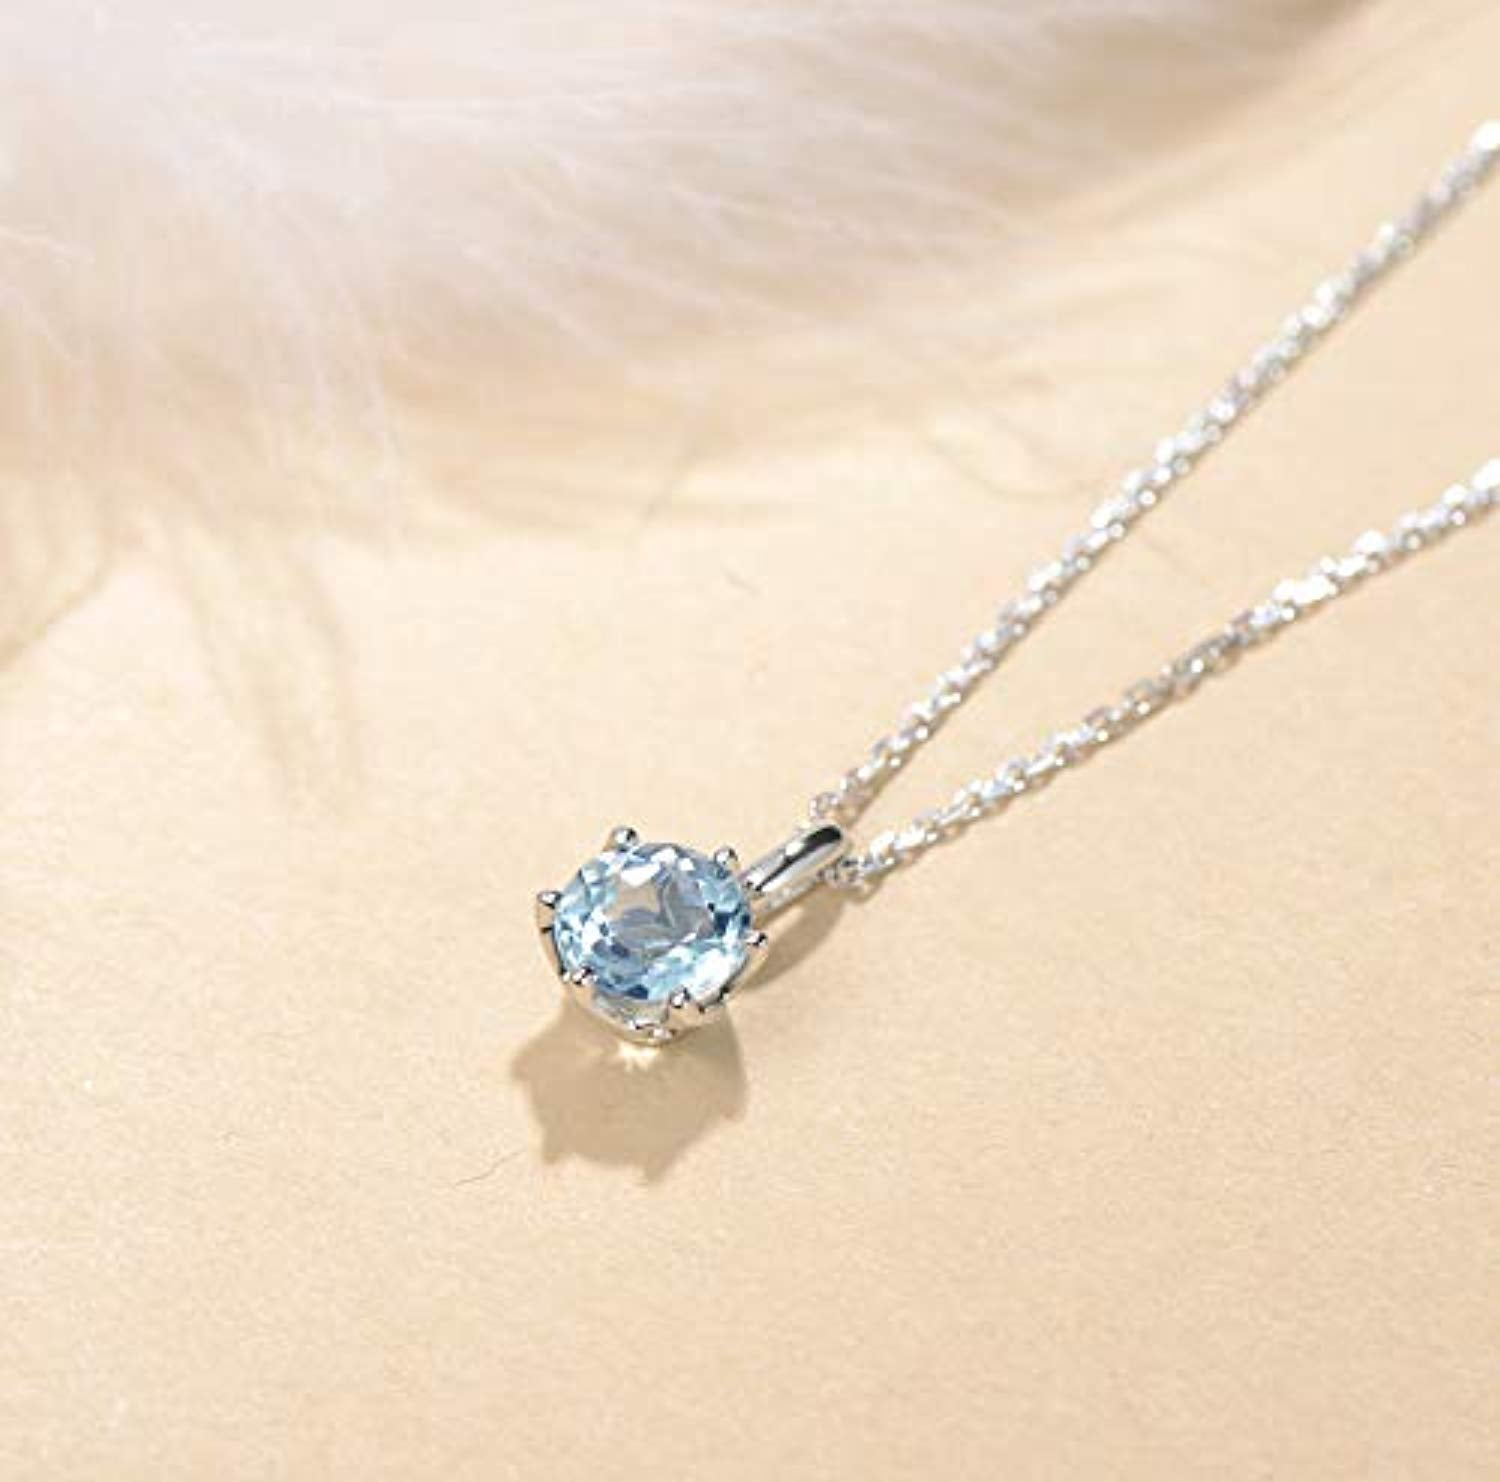 14K Solid White Gold  Genuine Natural Aquamarine Solitaire Pendant Necklace March Birthstone Gemstone Fine Jewelry Gifts